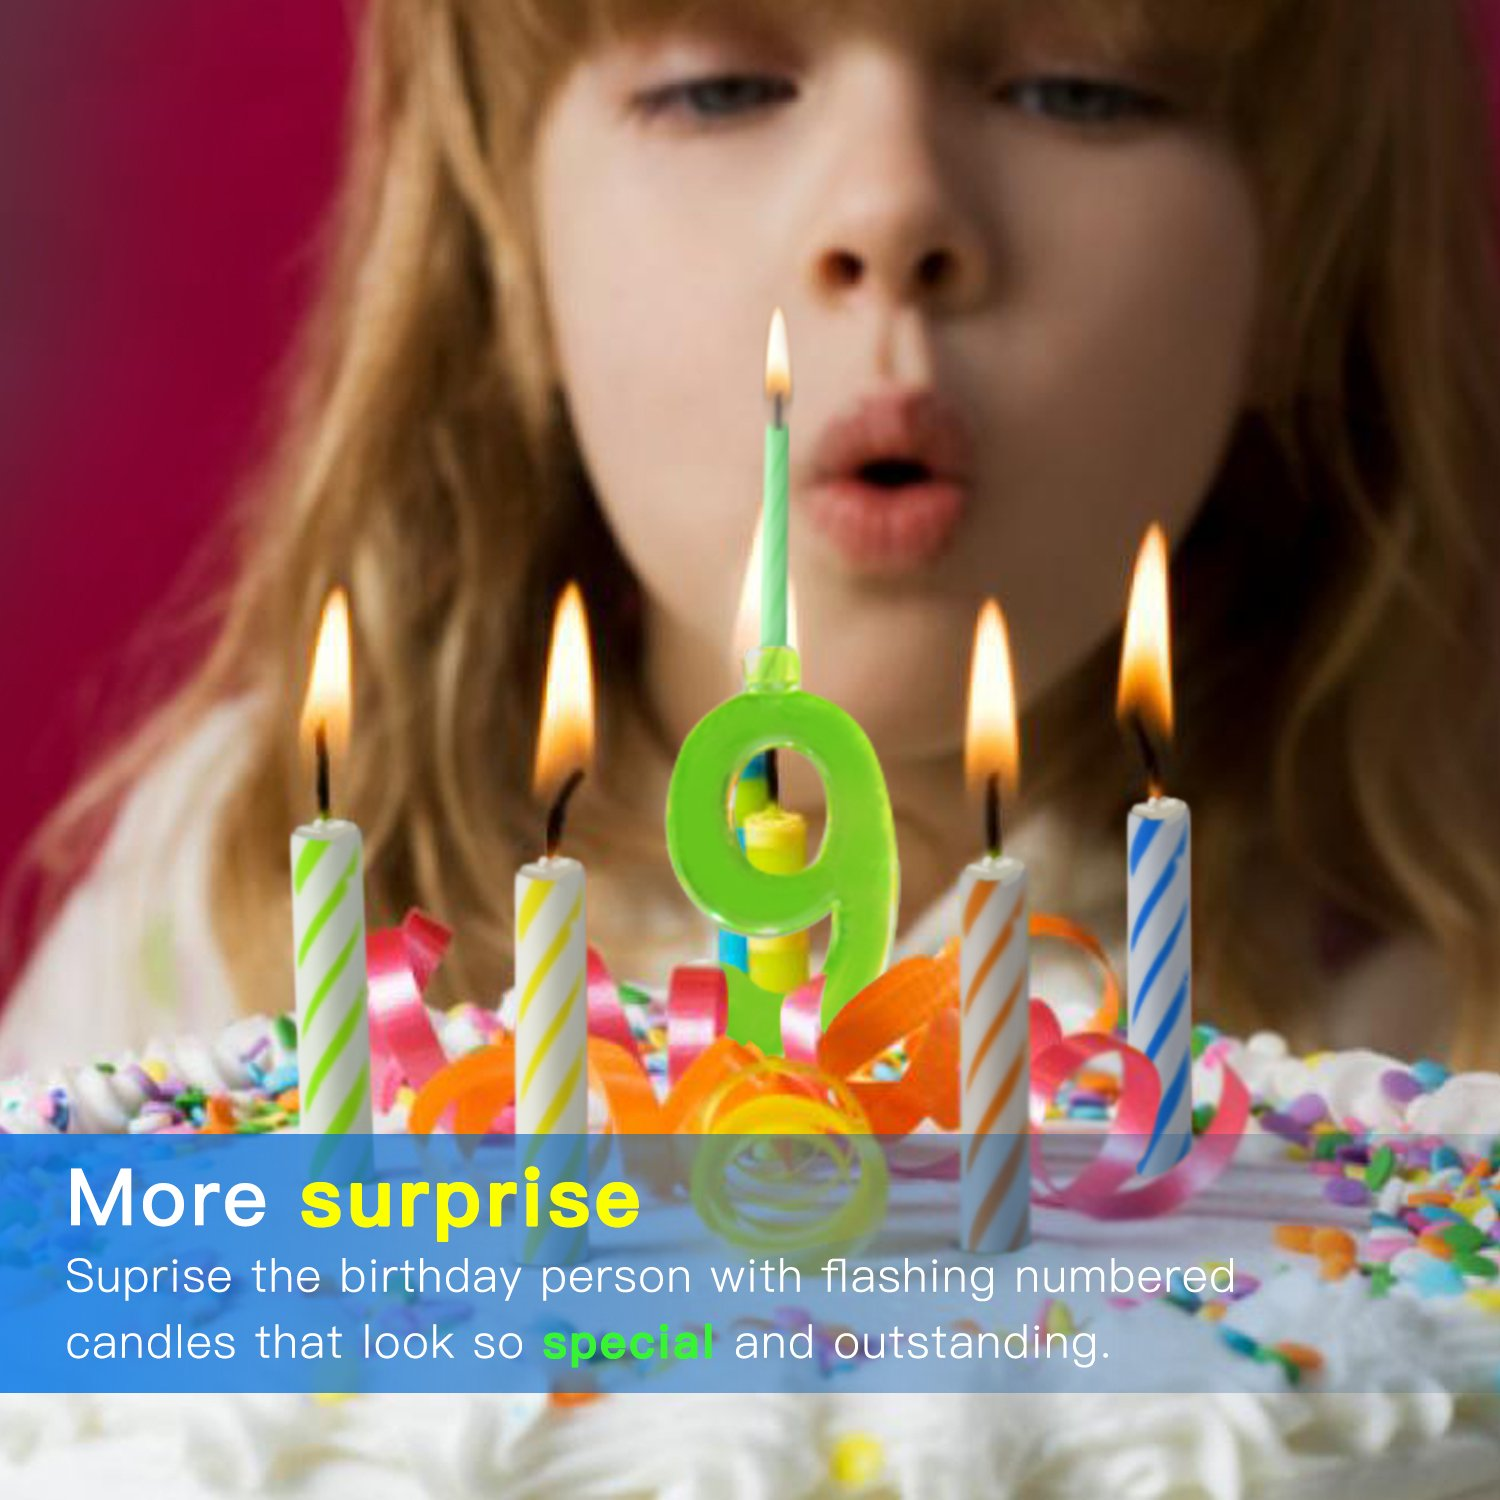 Novelty Place Multicolor Flashing Number Candle Set Color Changing LED Birthday Cake Topper With 4 Wax Candles